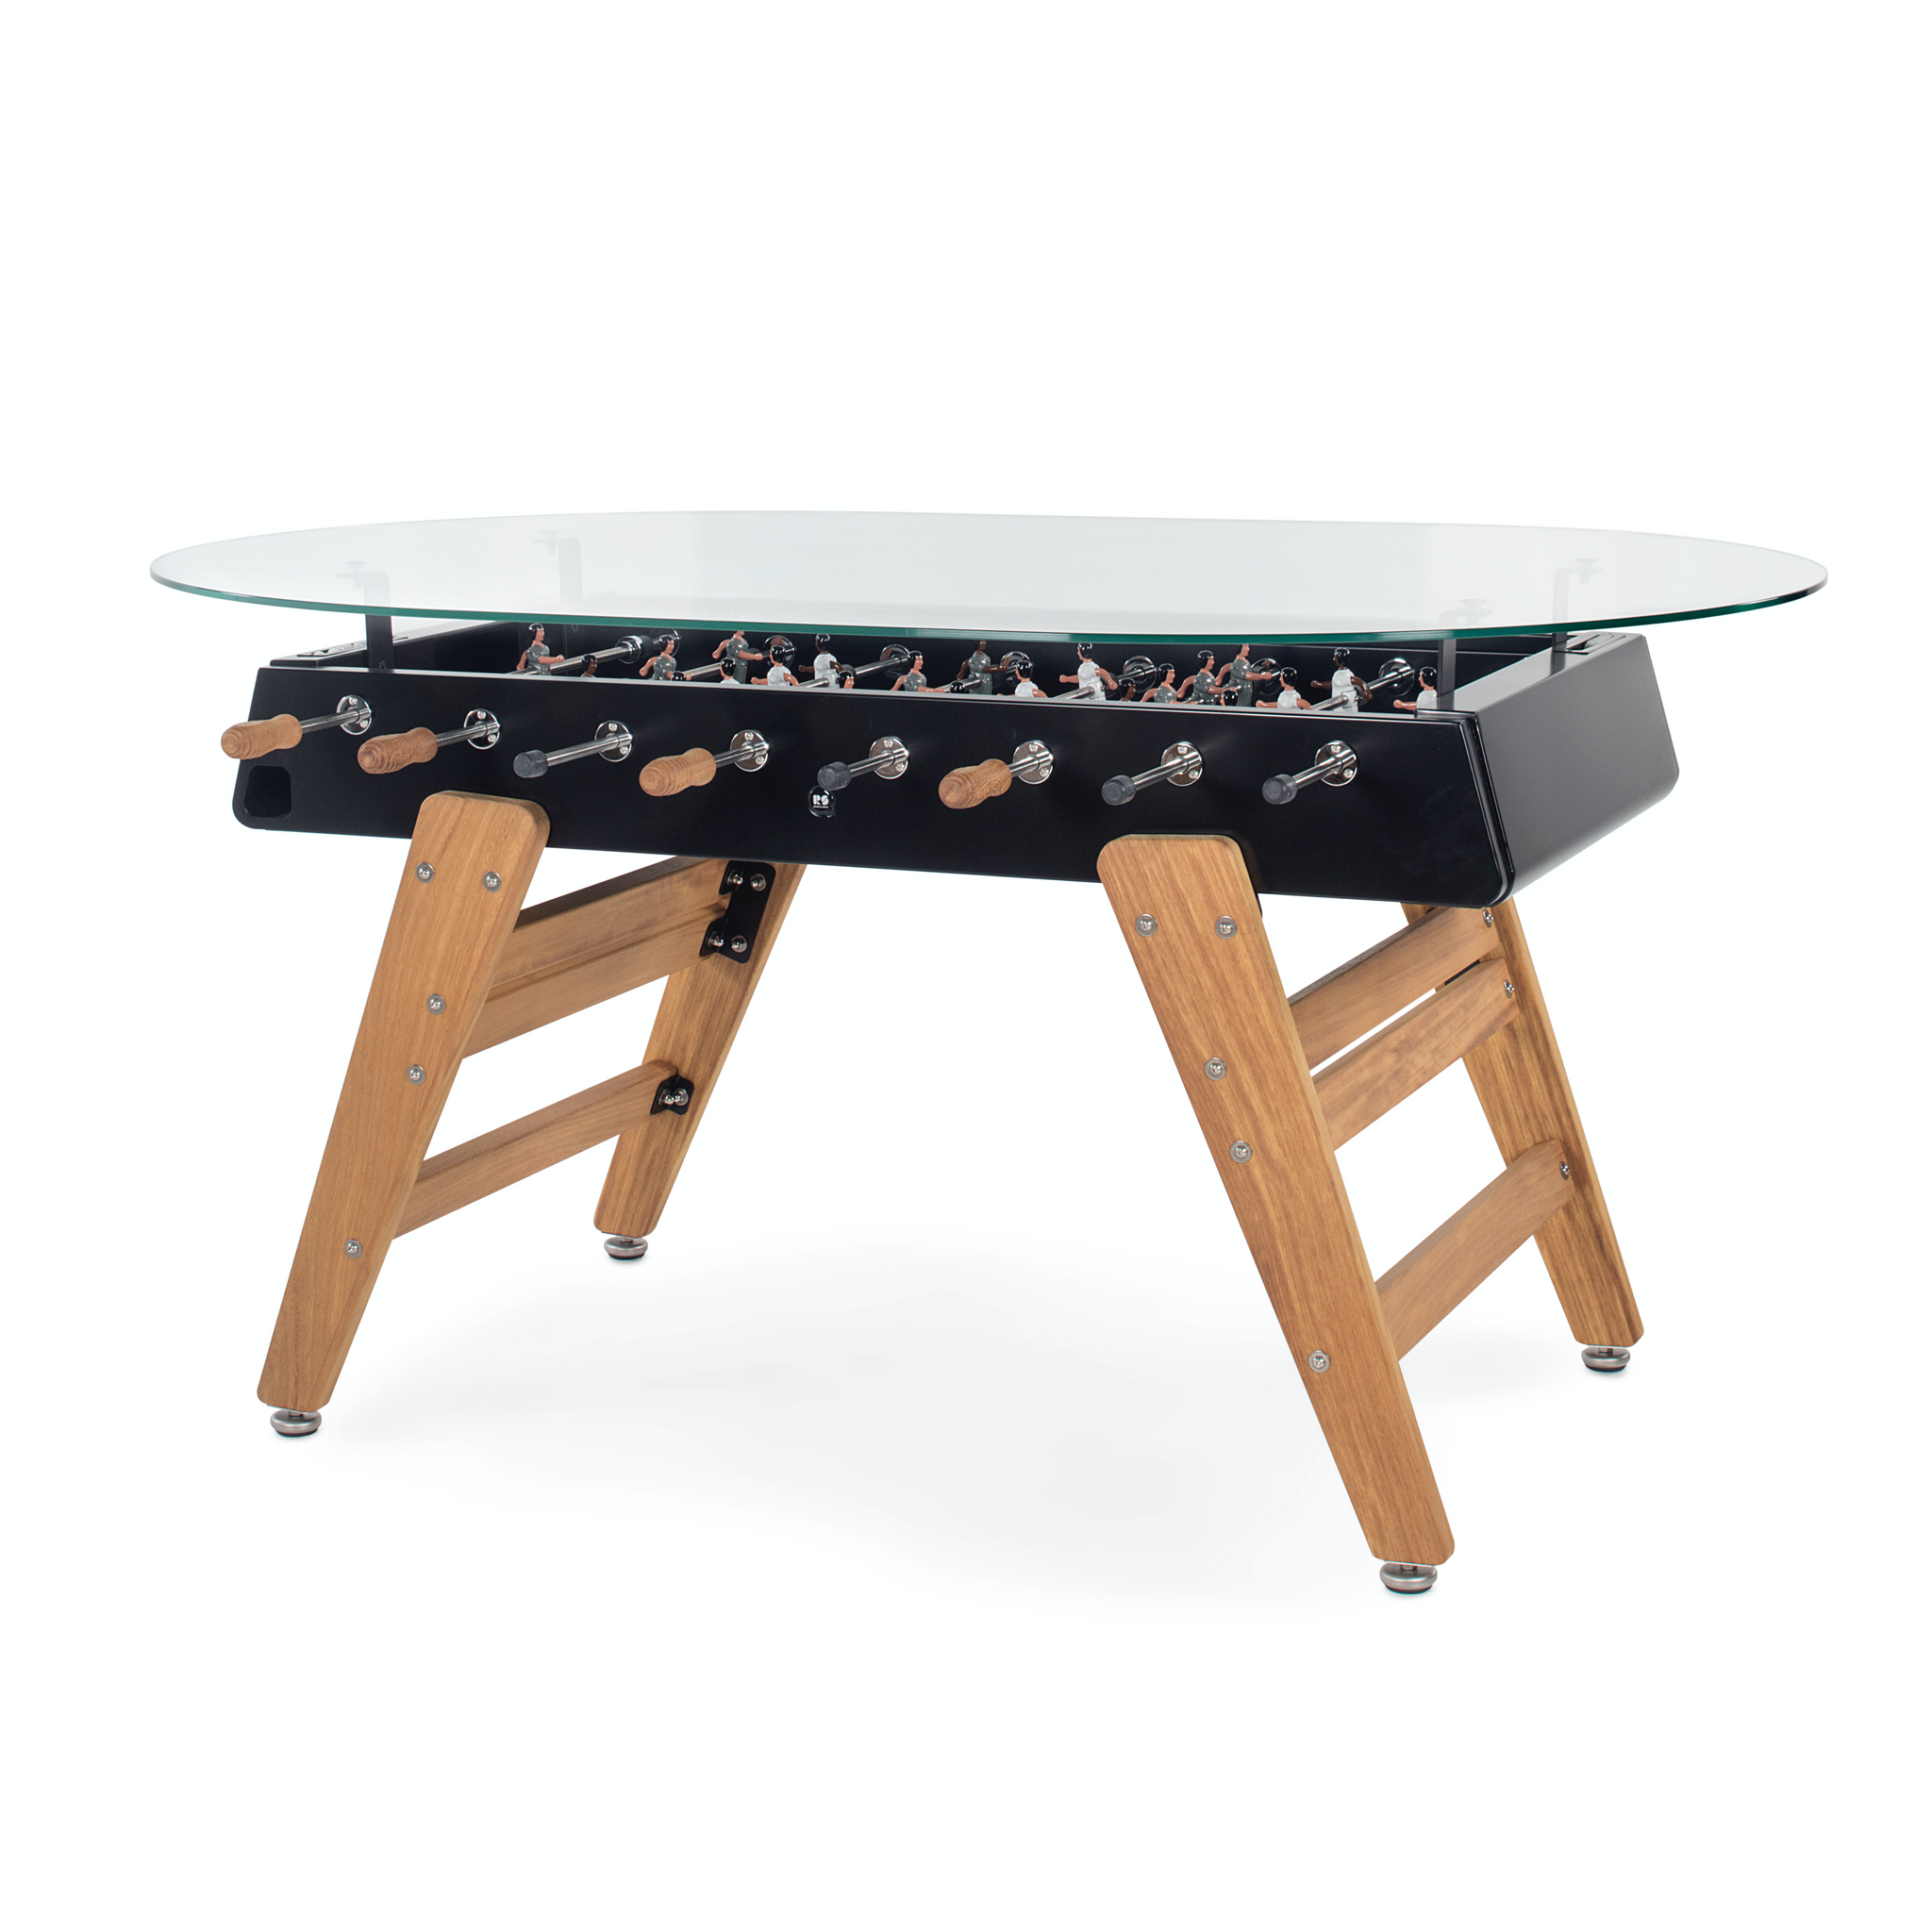 RS3 Wood Dining Oval Foosball Table in Black